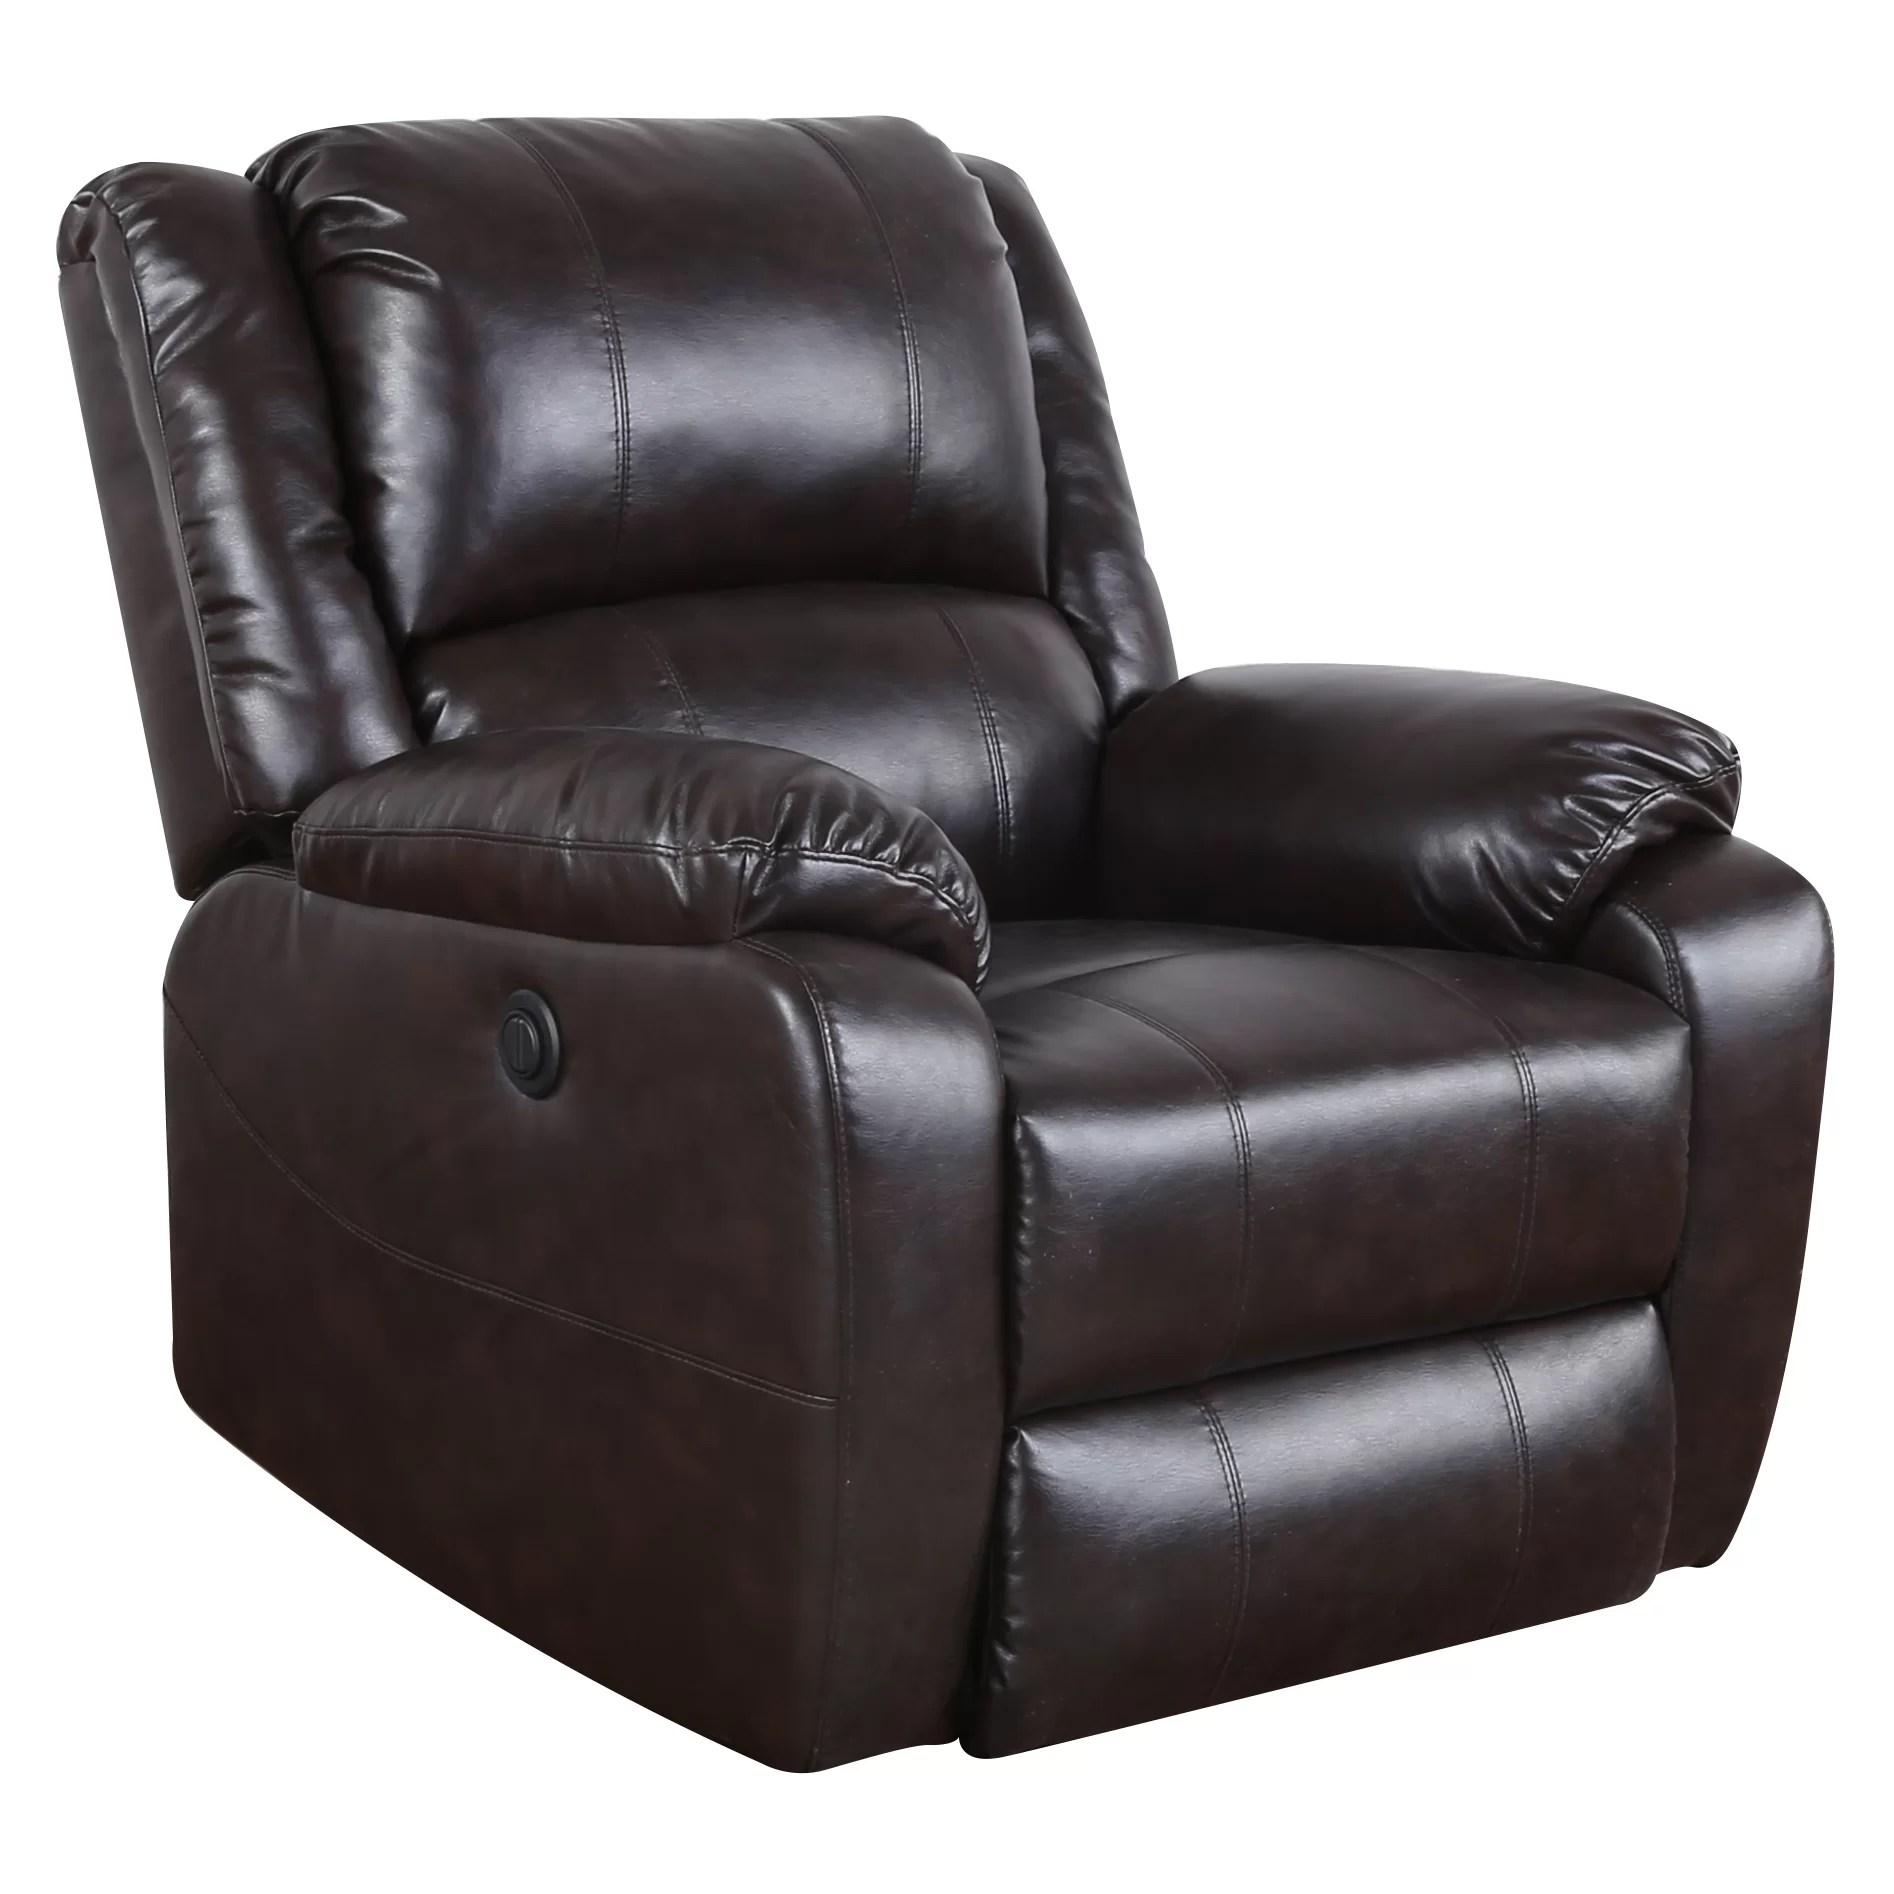 Electric Power Recliner Electric Living Room Power Recliner | Wayfair.ca